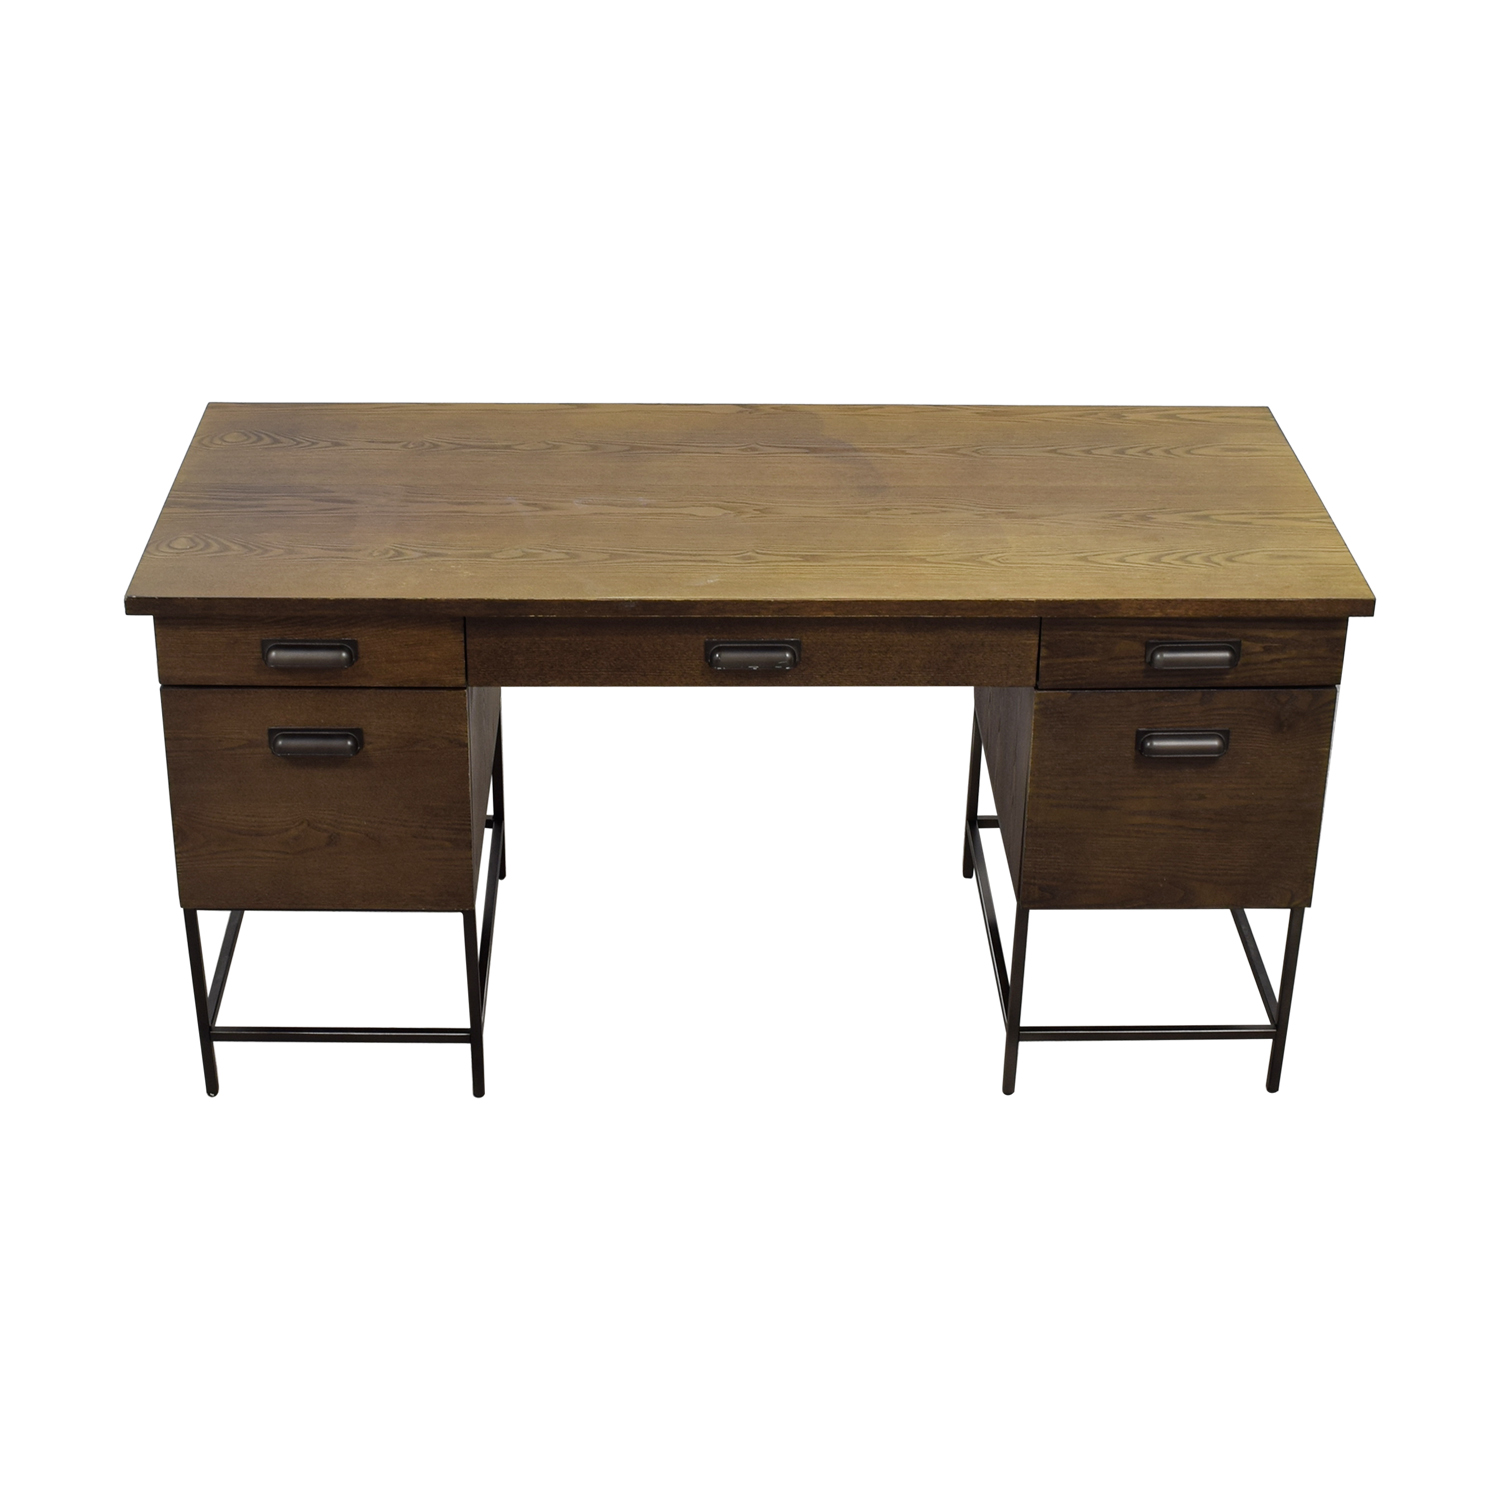 West Elm West Elm Rustic Wood Desk discount